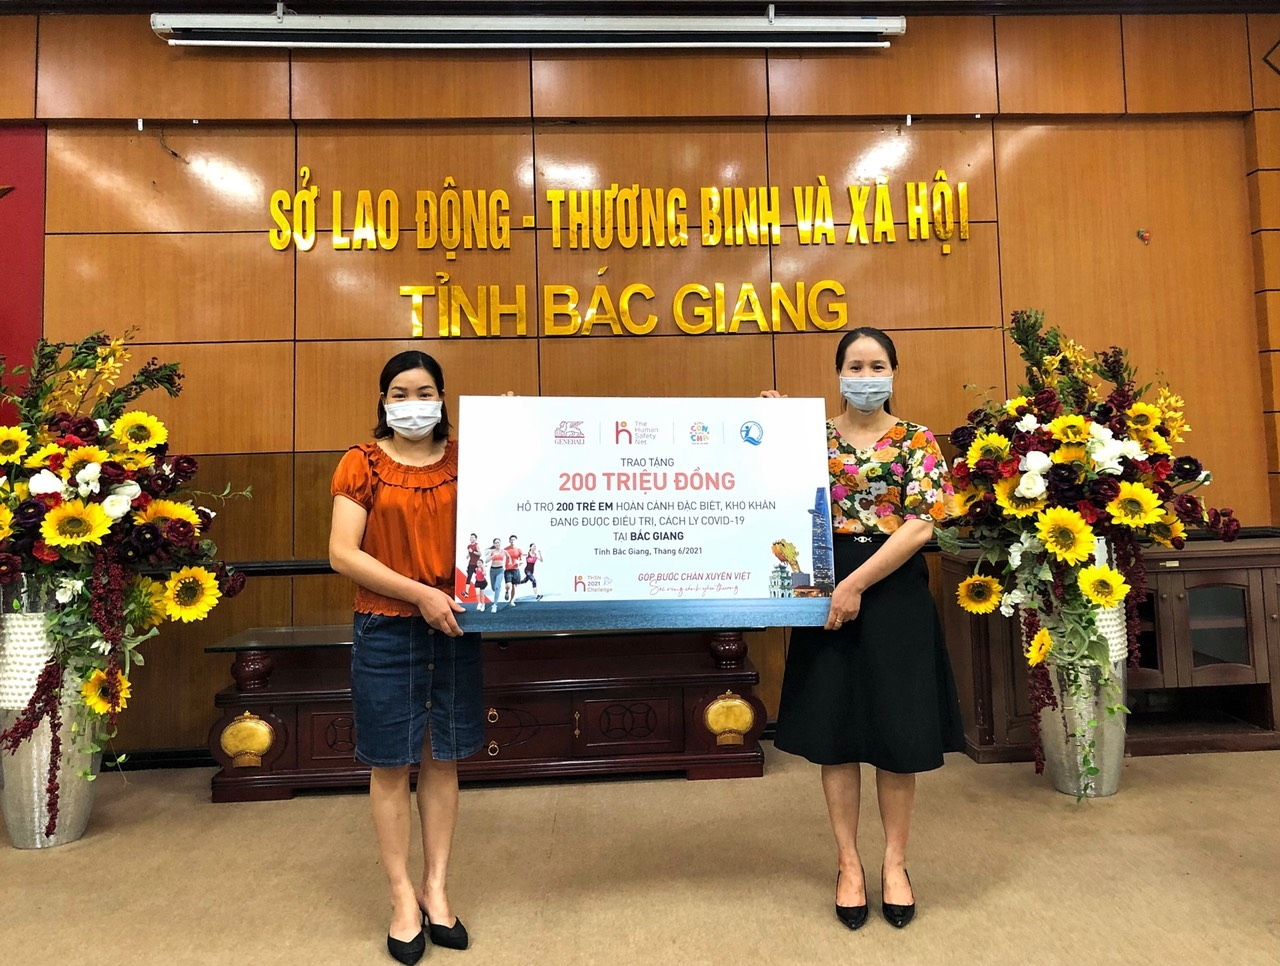 Generali Vietnam takes prompt action to support COVID-19 fight